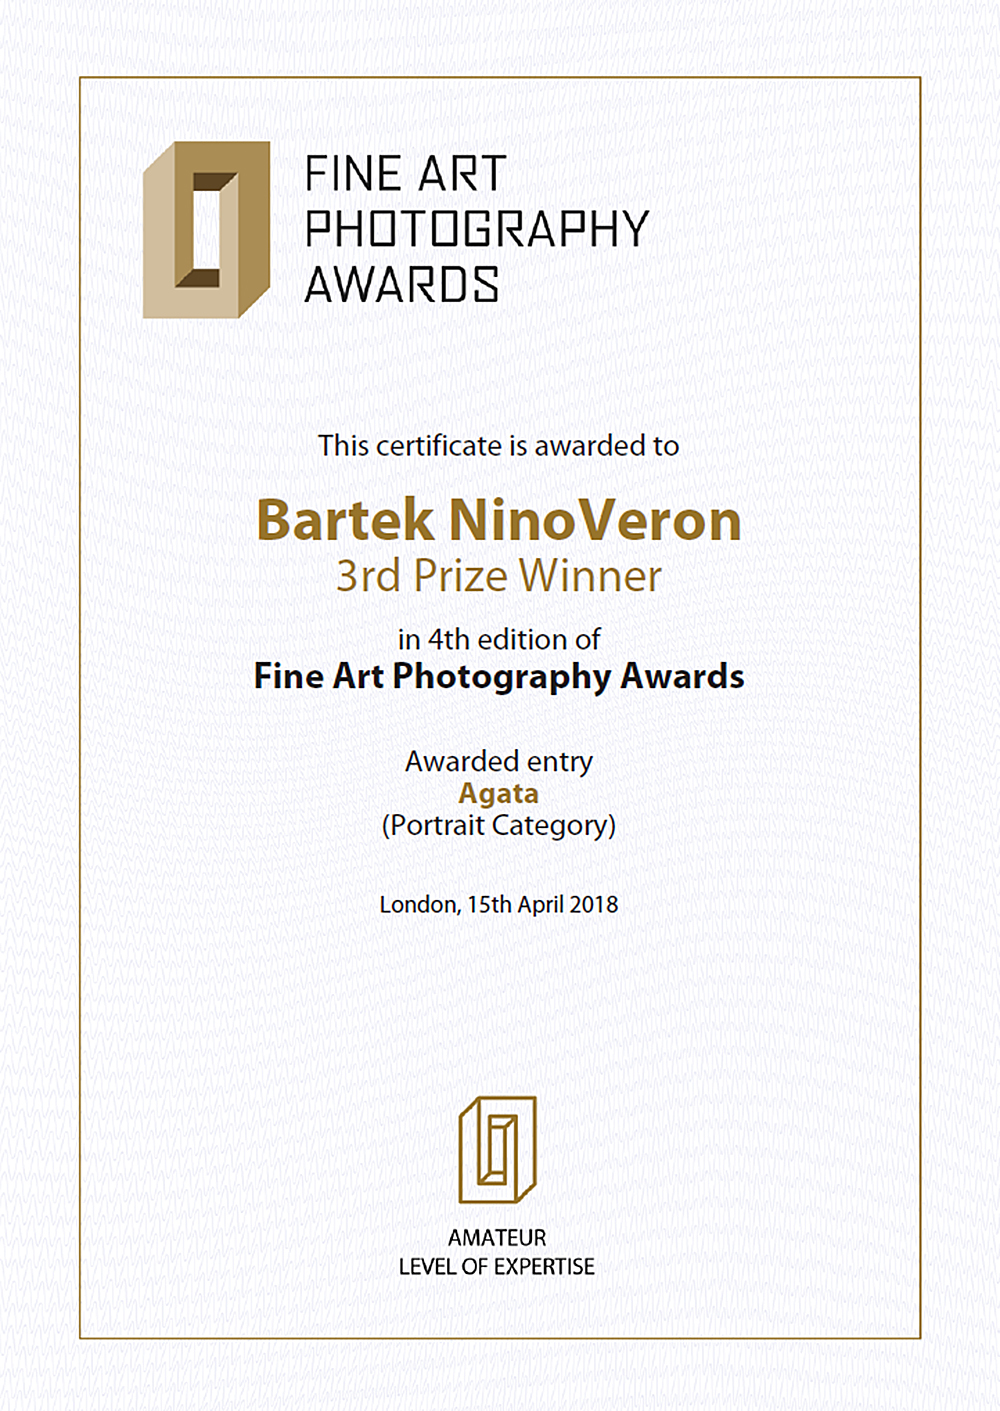 akt, nude, nagroda, konkurs, Fine Art Photography Awards, www.fineartphotoawards.com, ninoveron, Agata